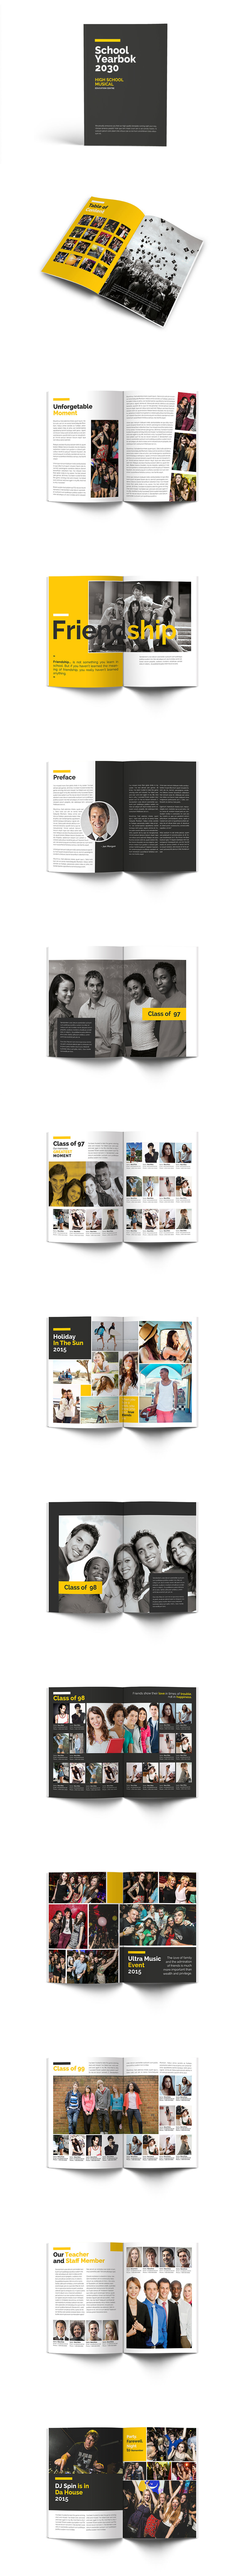 School Year Book Template InDesign INDD - 40 Pages | Co. Brochure ...